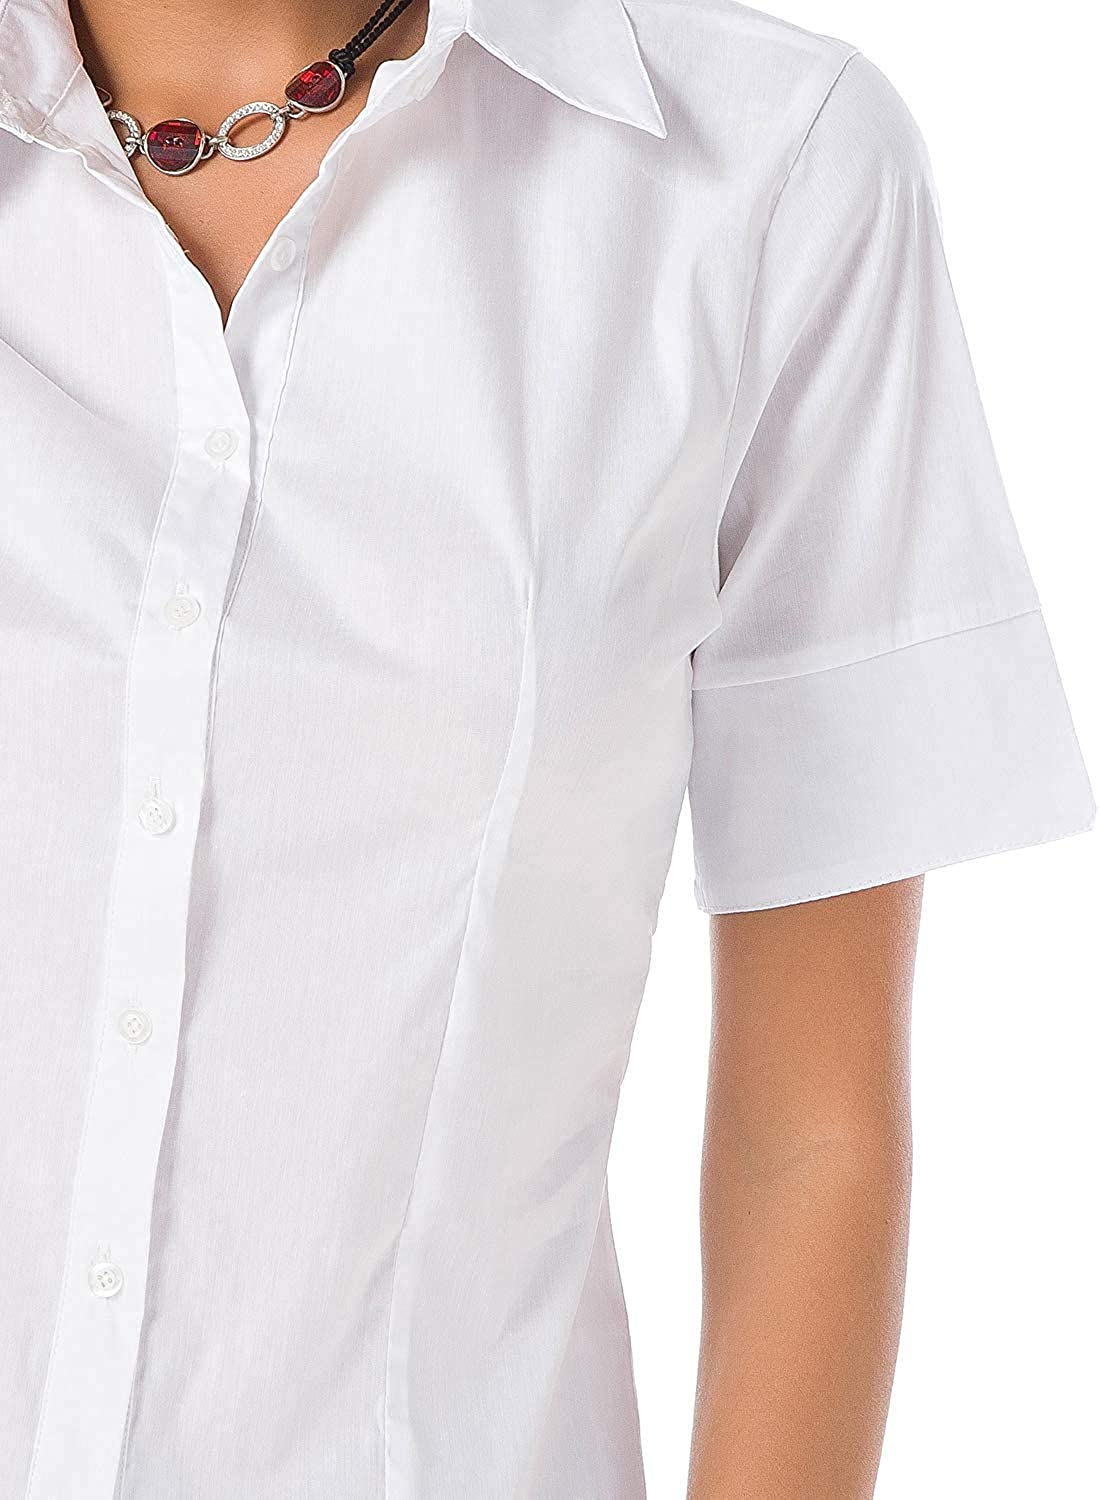 Atnlewhi Womens Basic Button Down Shirts Cotton Simple Short Sleeve Stretch Formal Casual Blouse